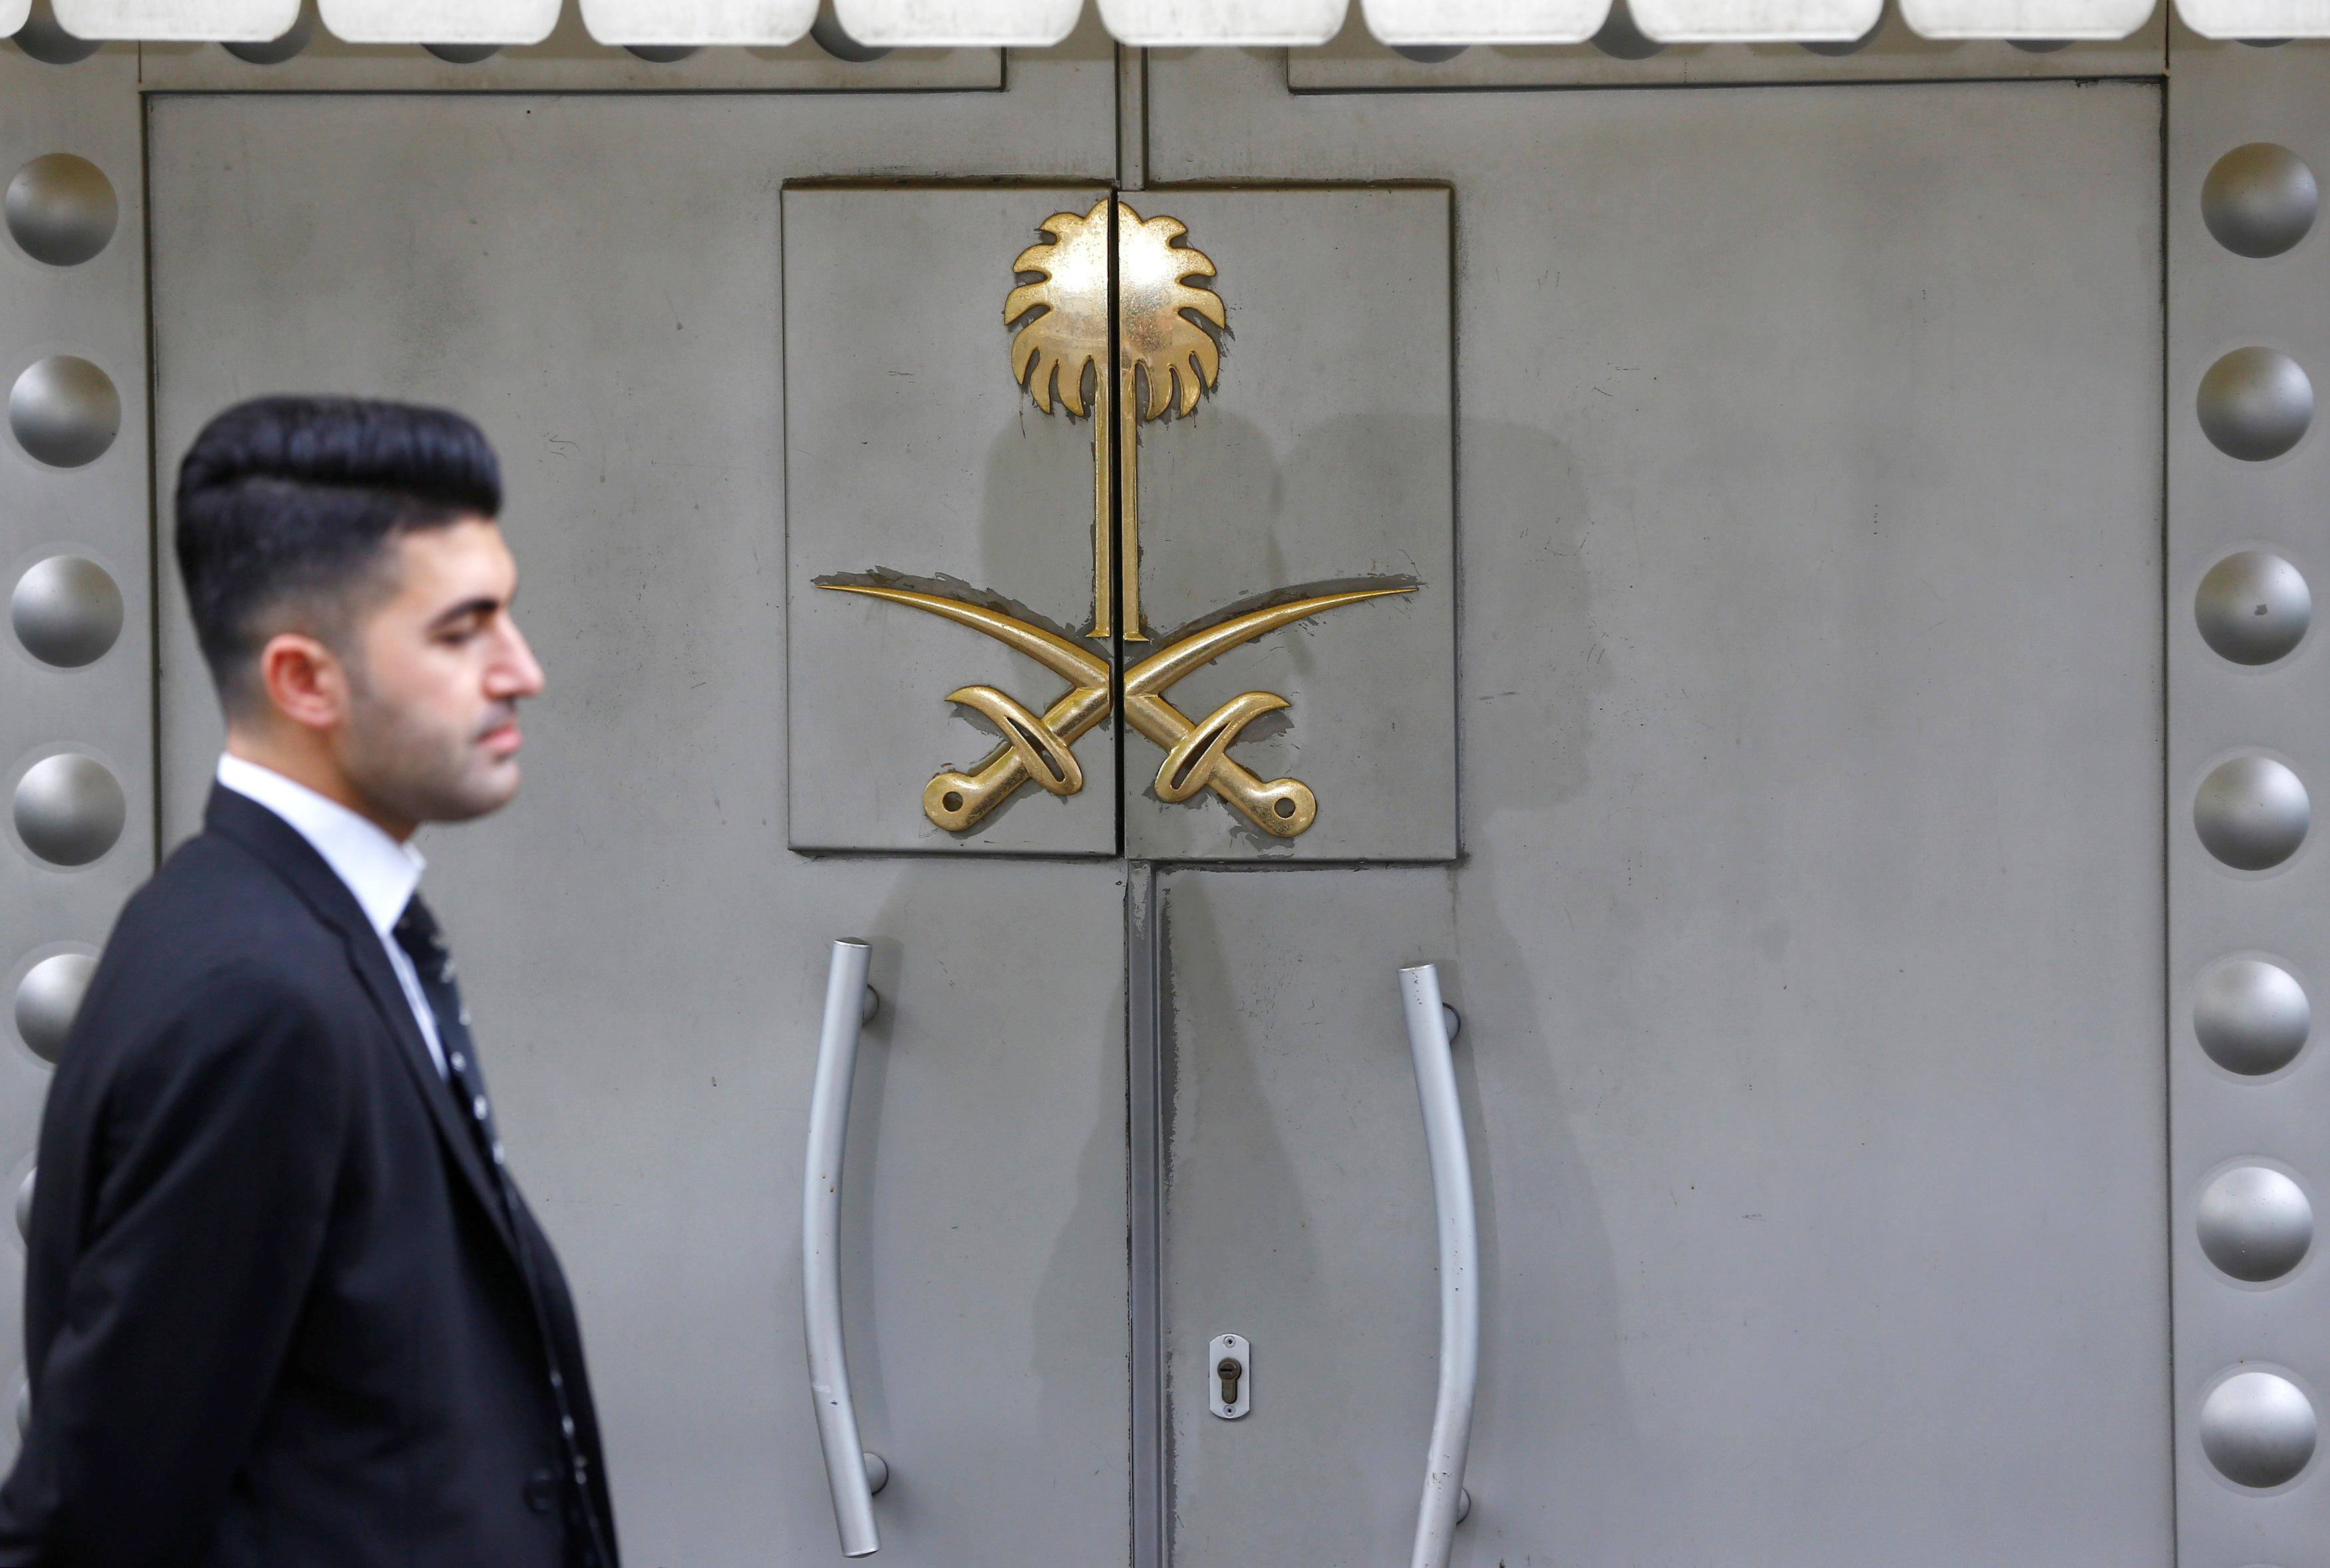 A security staff member stands at the entrance of Saudi Arabia's consulate in Istanbul, Turkey October 31, 2018. REUTERS/Osman Orsal